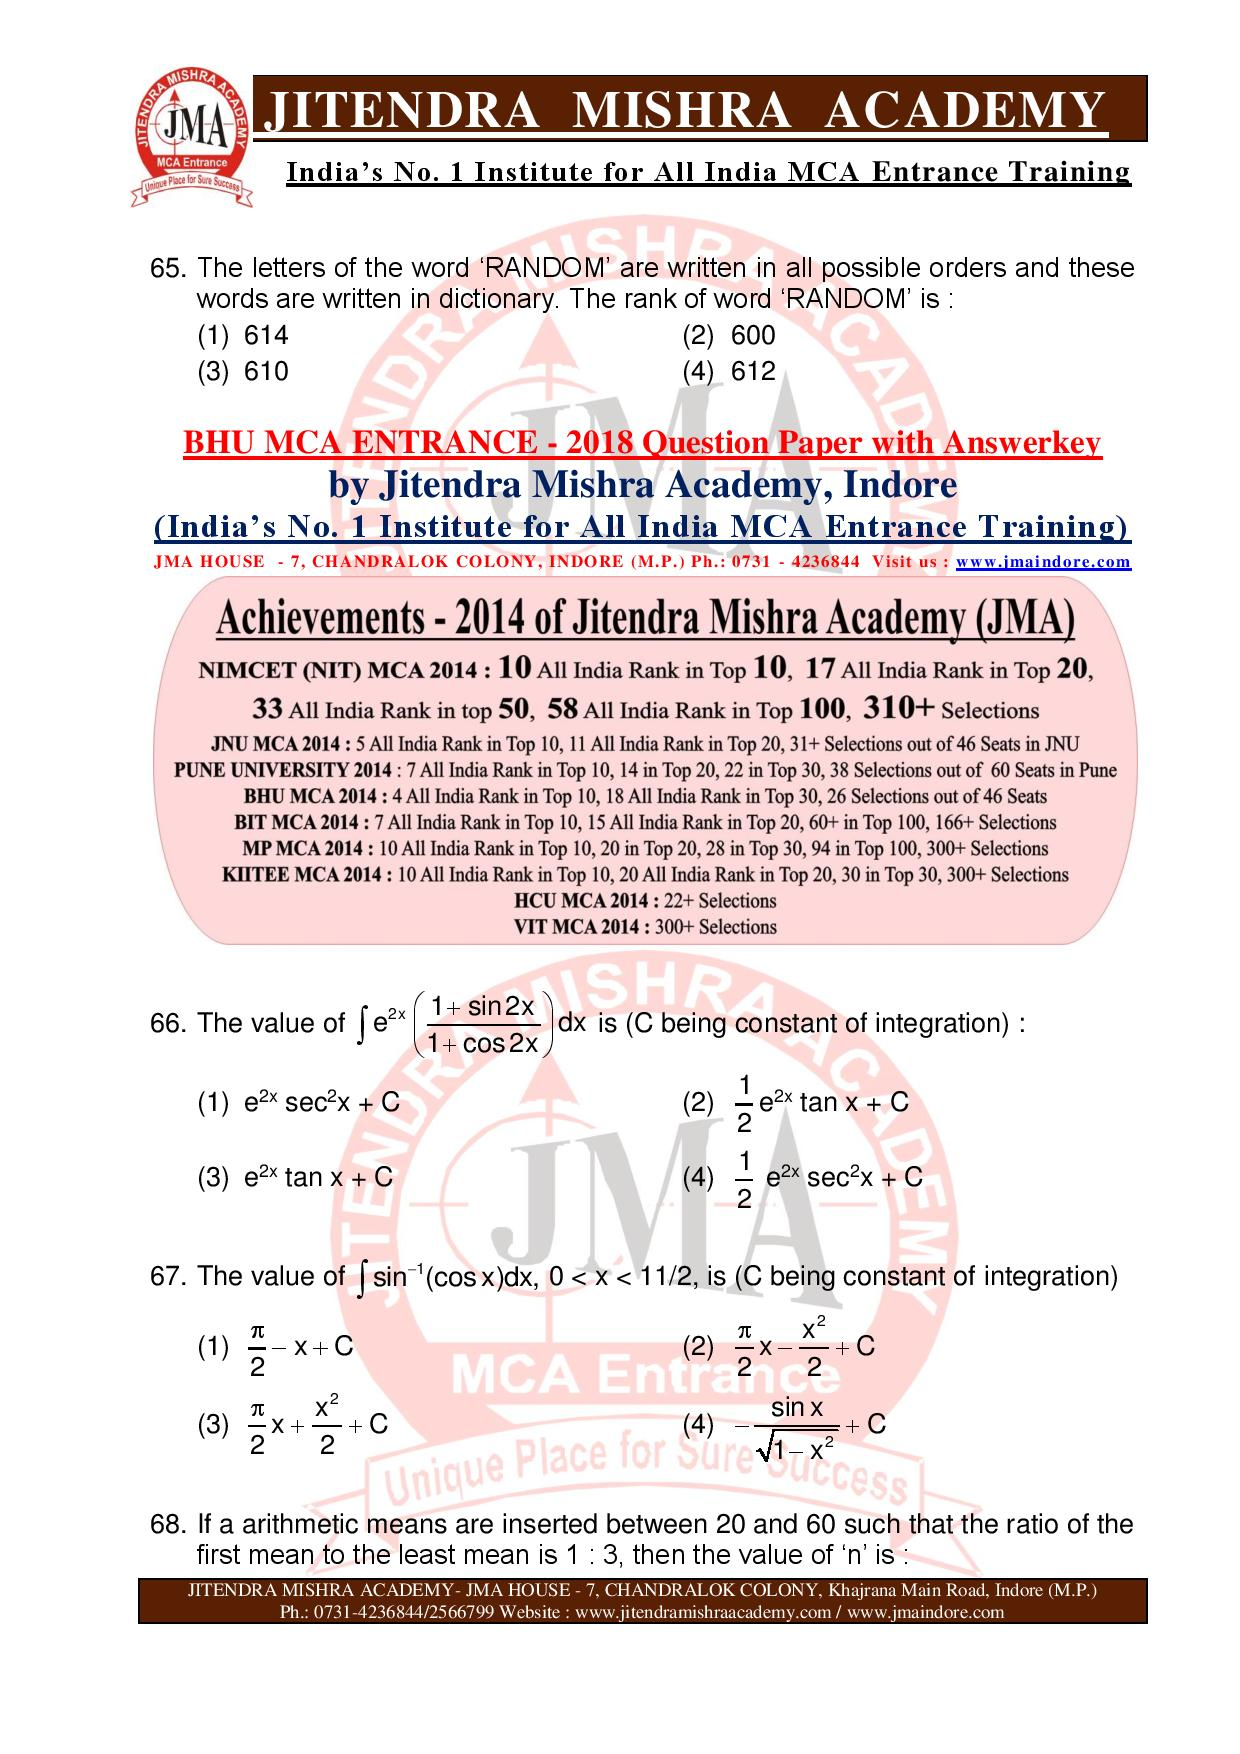 BHU MCA 2018 QUESTION PAPER12-page-020